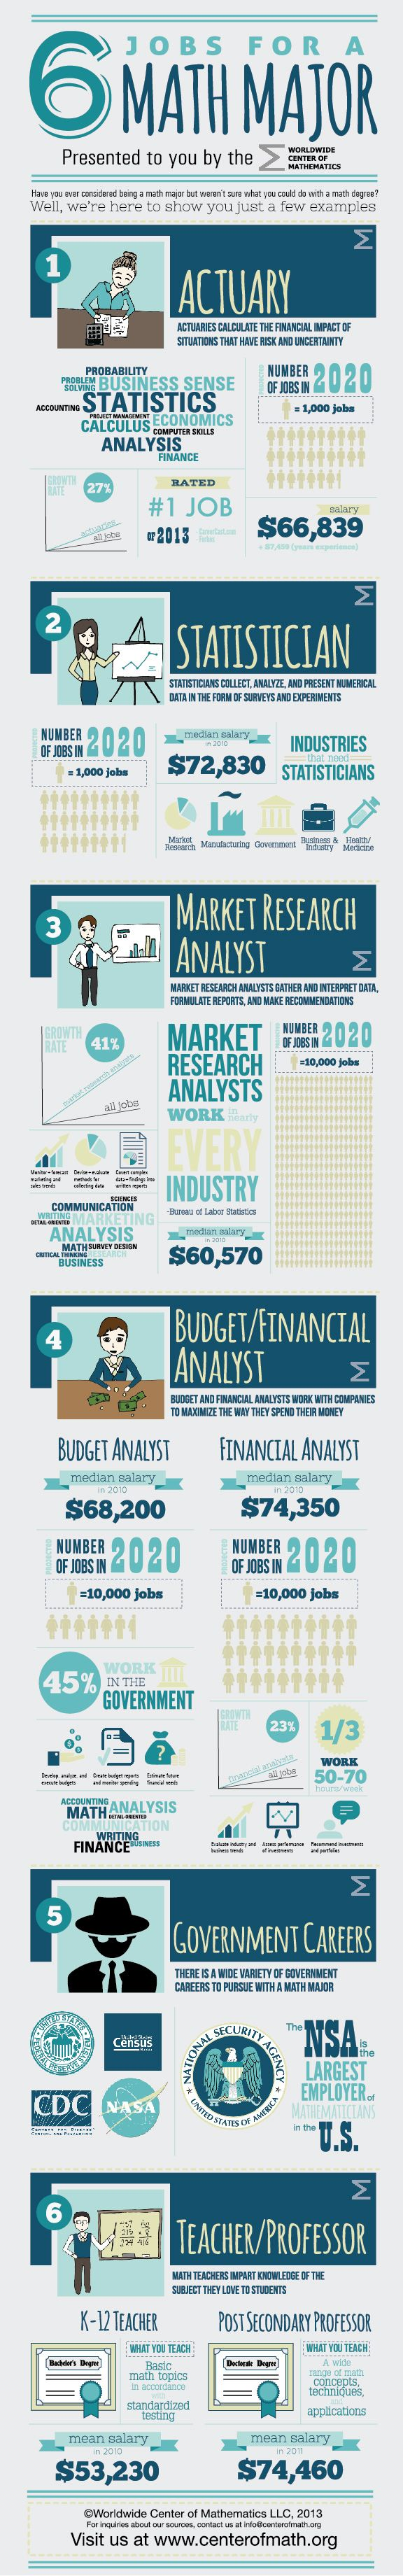 6 Jobs You Can Get With A Math Degree - I hate extra long pins...but this is worth it.